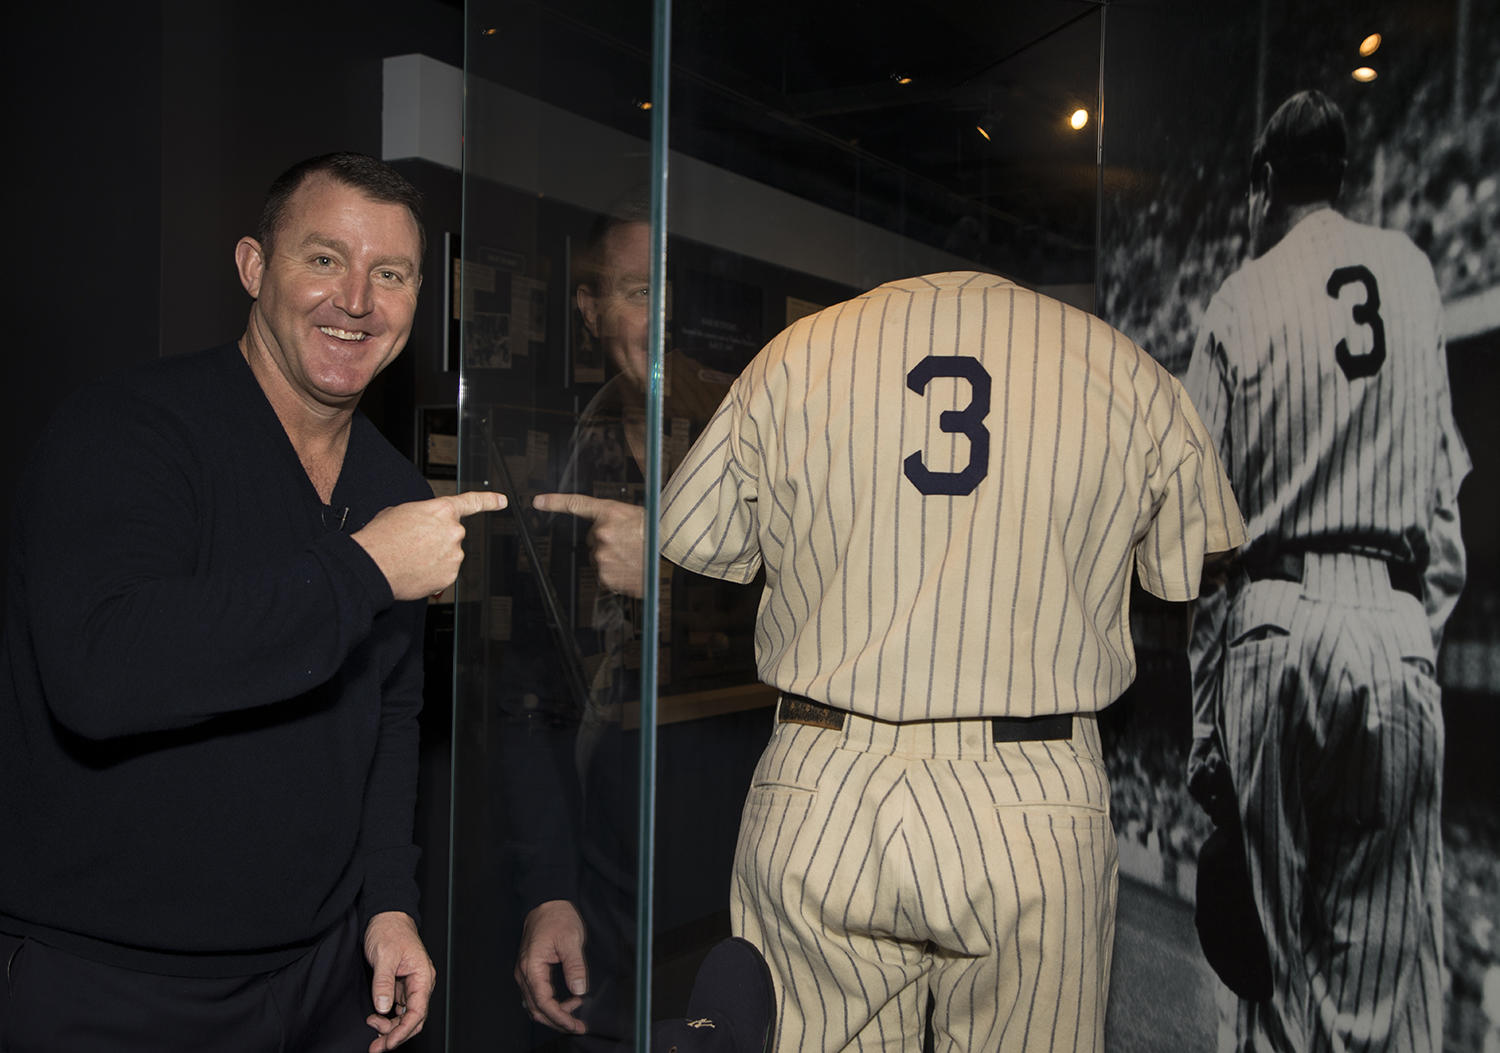 Jim Thome motions toward Babe Ruth's jersey on exhibit in the Museum during his Orientation Visit. (Milo Stewart Jr./National Baseball Hall of Fame and Museum)